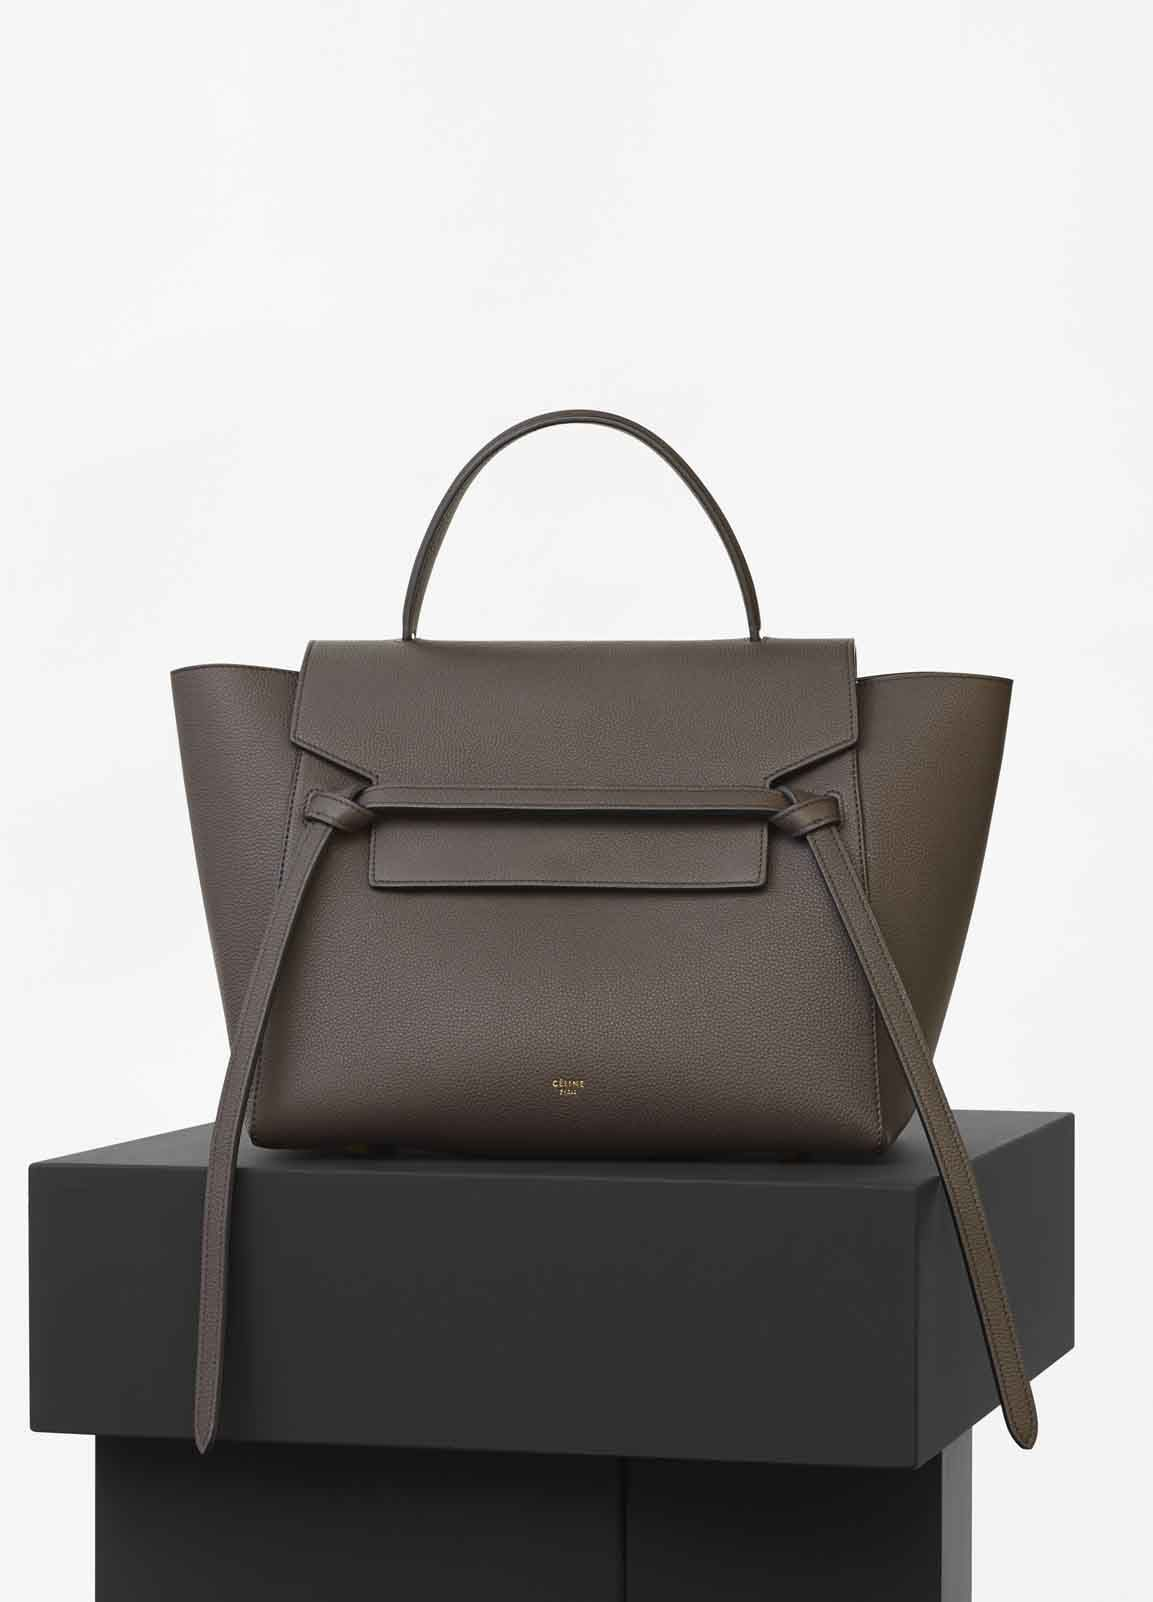 e1a06b8a0bc1 Mini Belt Bag in Baby Grained Calfskin - Spring   Summer Collection 2016